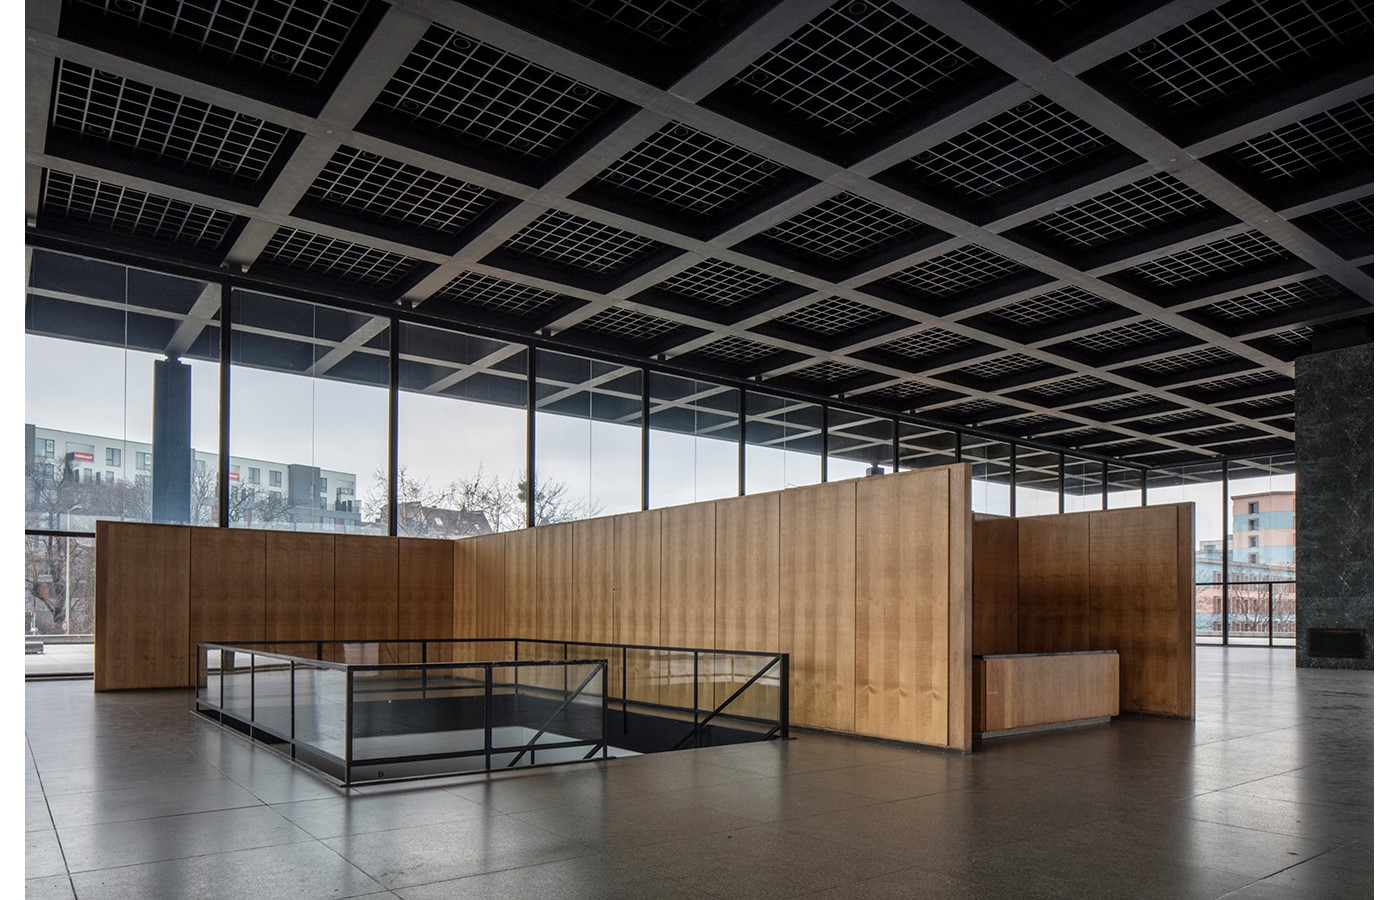 Mies Van der Rohe's Renovated New National Gallery in Berlin revealed through images by David Chipperfield- Sheet12